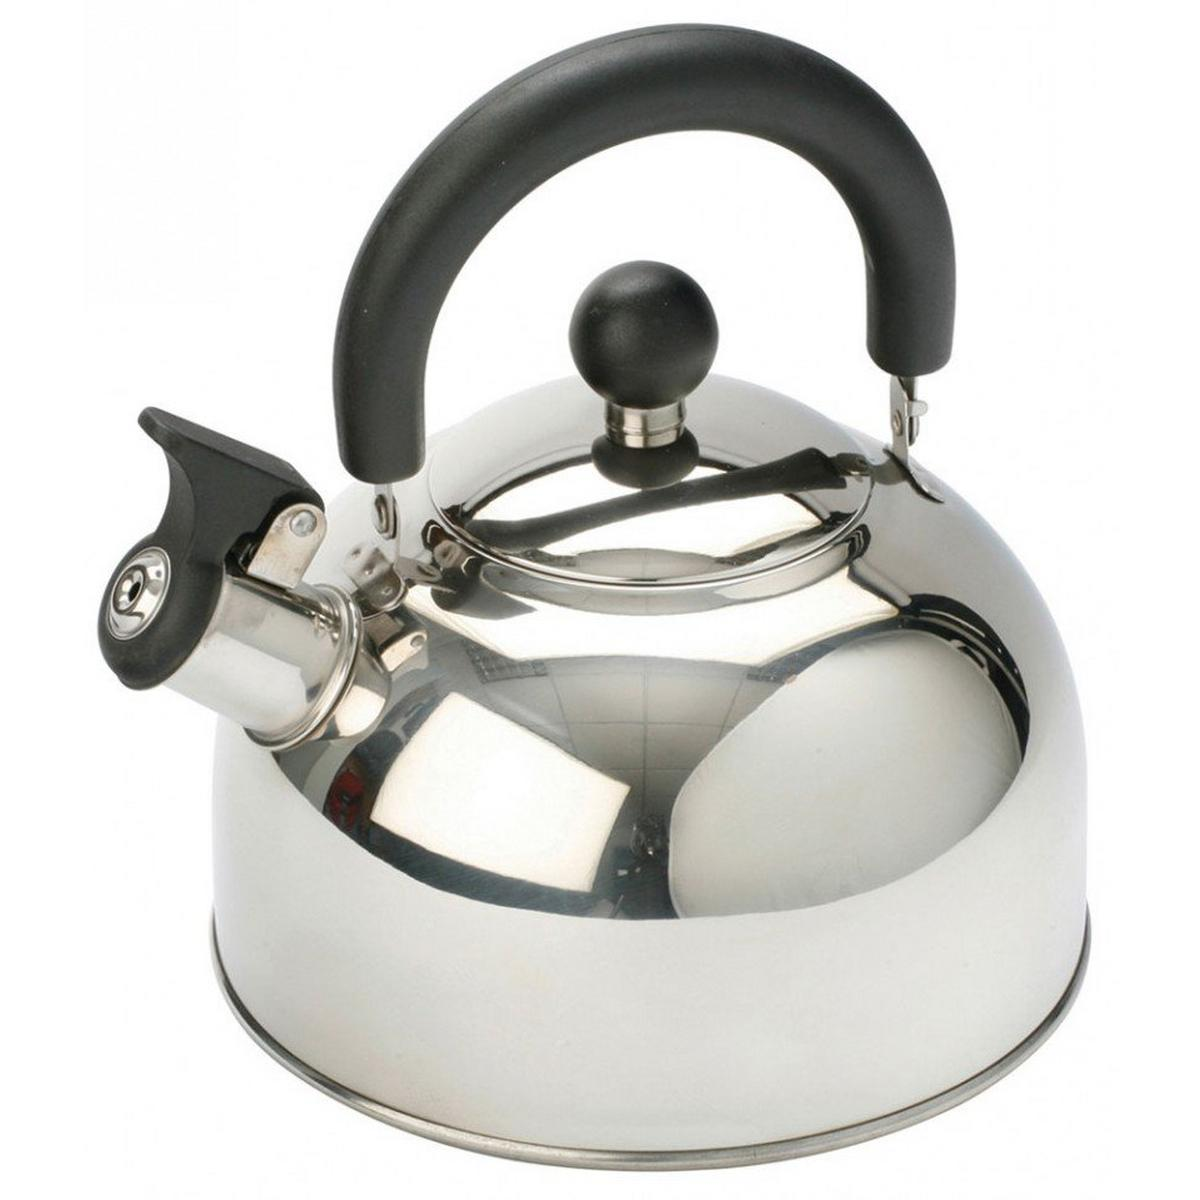 Vango Stainless Steel Kettle with Folding Handle